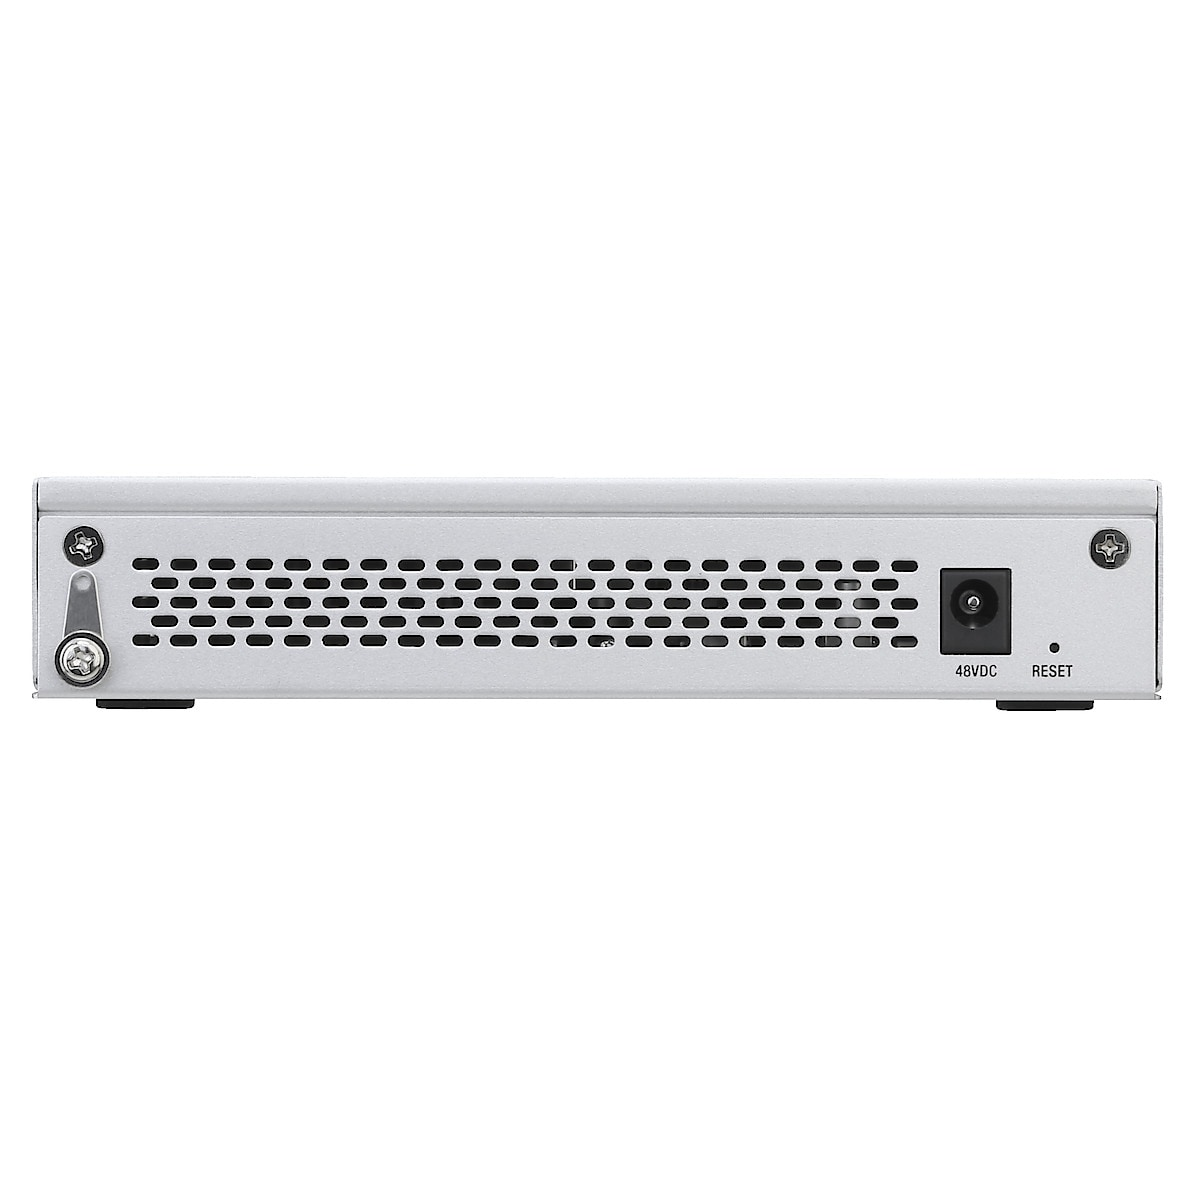 Nätverksswitch Ubiquiti Switch 8 (60 W PoE)